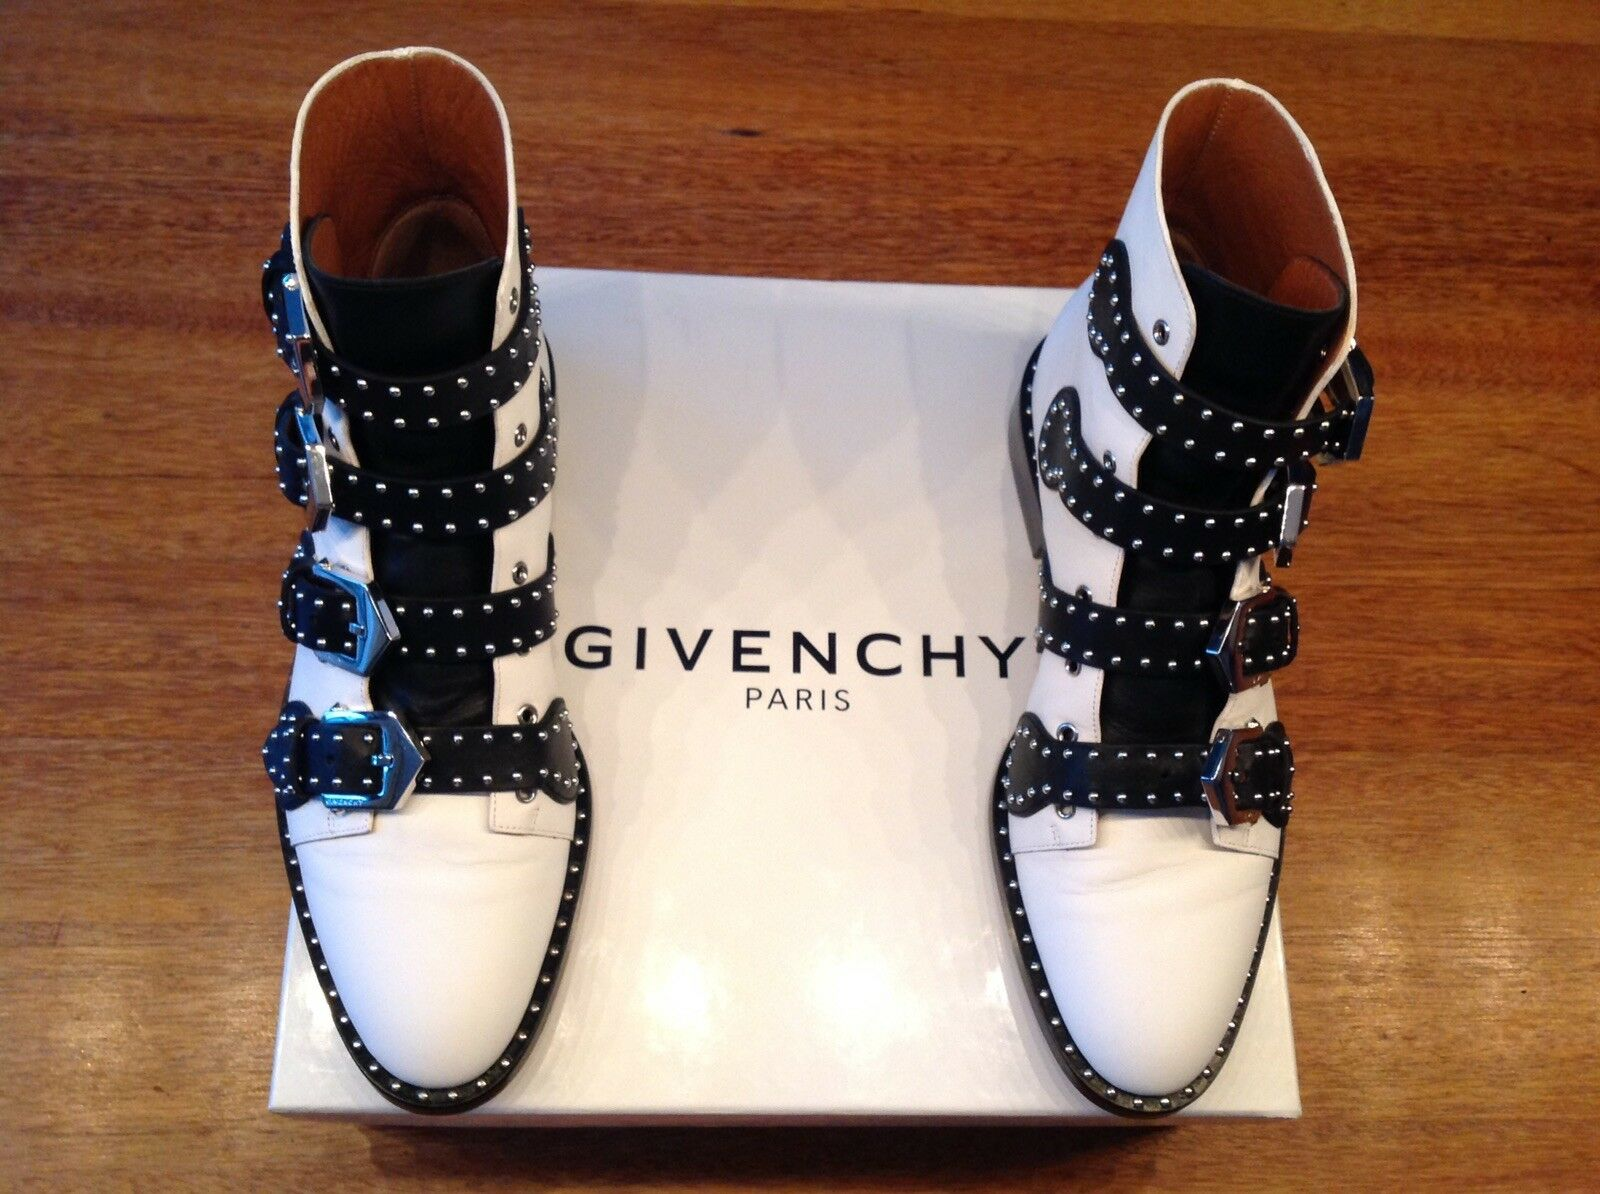 Givenchy Ankle Boot Boot Ankle Stiefelette schwarz / weiß top ORIGINAL 9e8d91